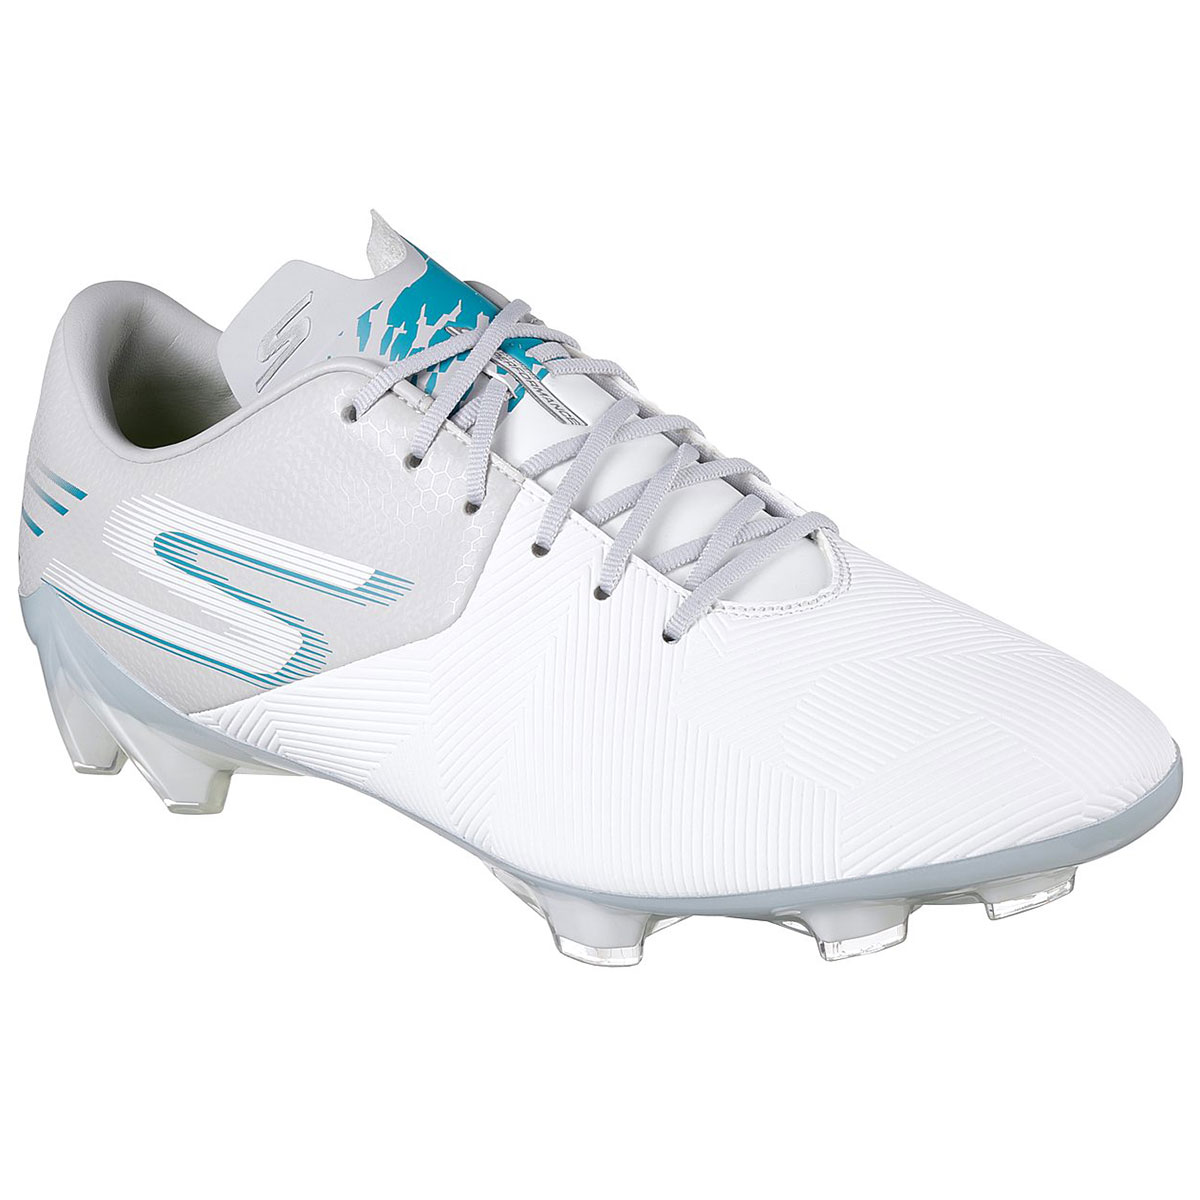 Skechers Men's Reflex Soccer Cleat - White, 12